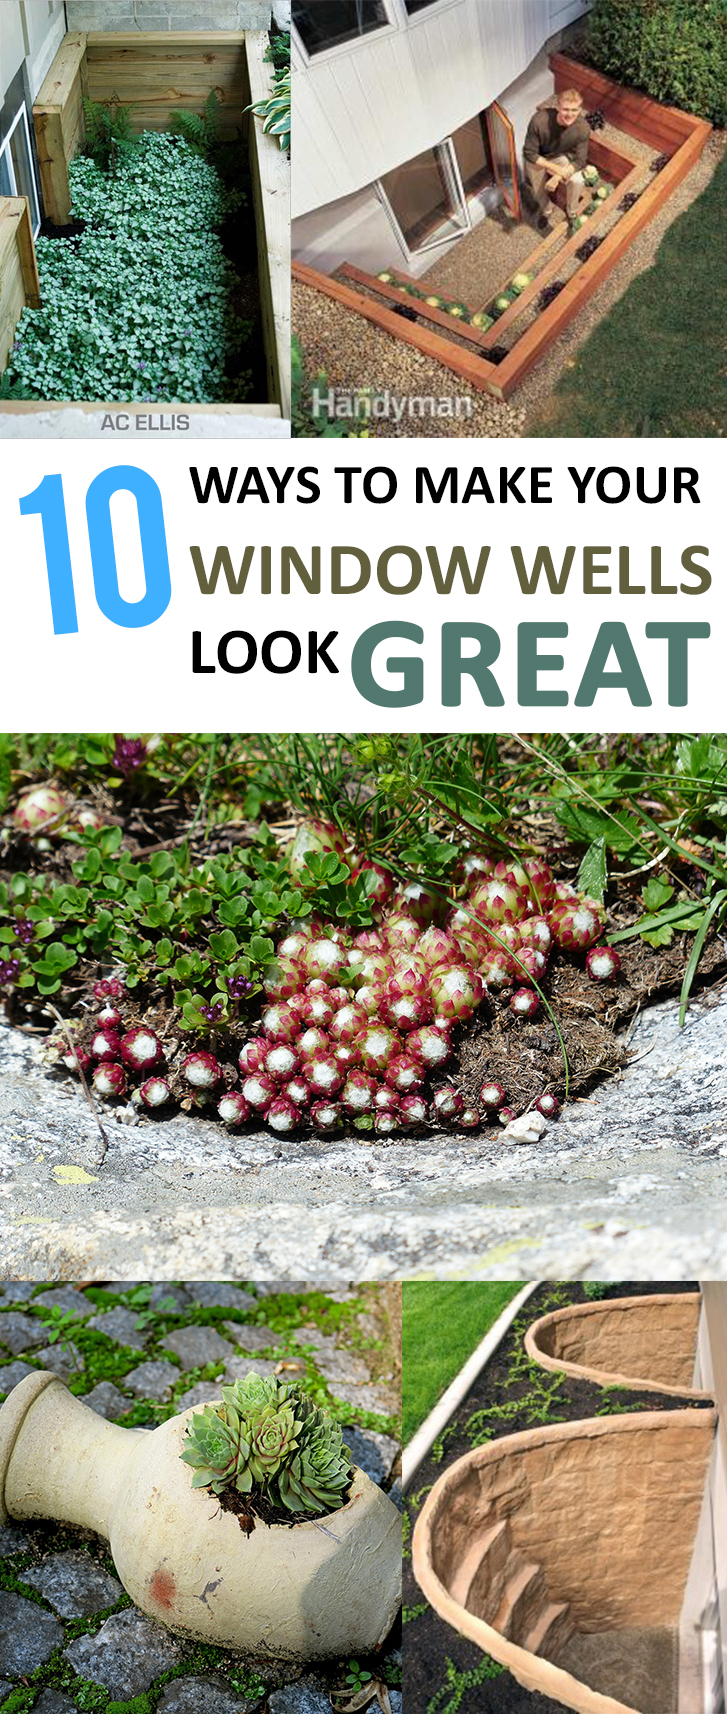 10 Ways to Make Your Window Wells Look Great - Page 6 of 11 -